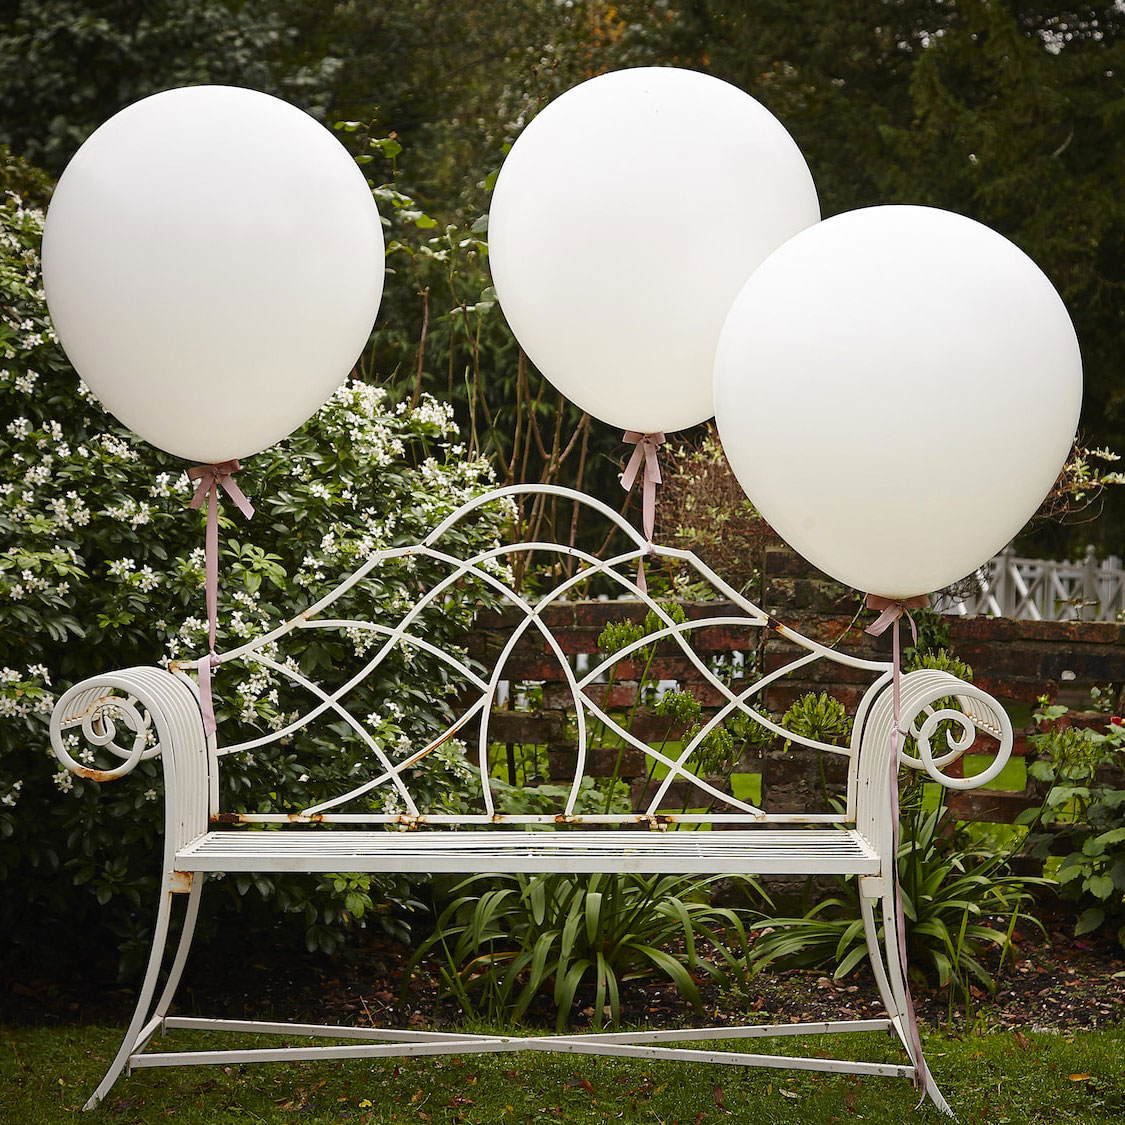 3 ballons géants en latex blanc